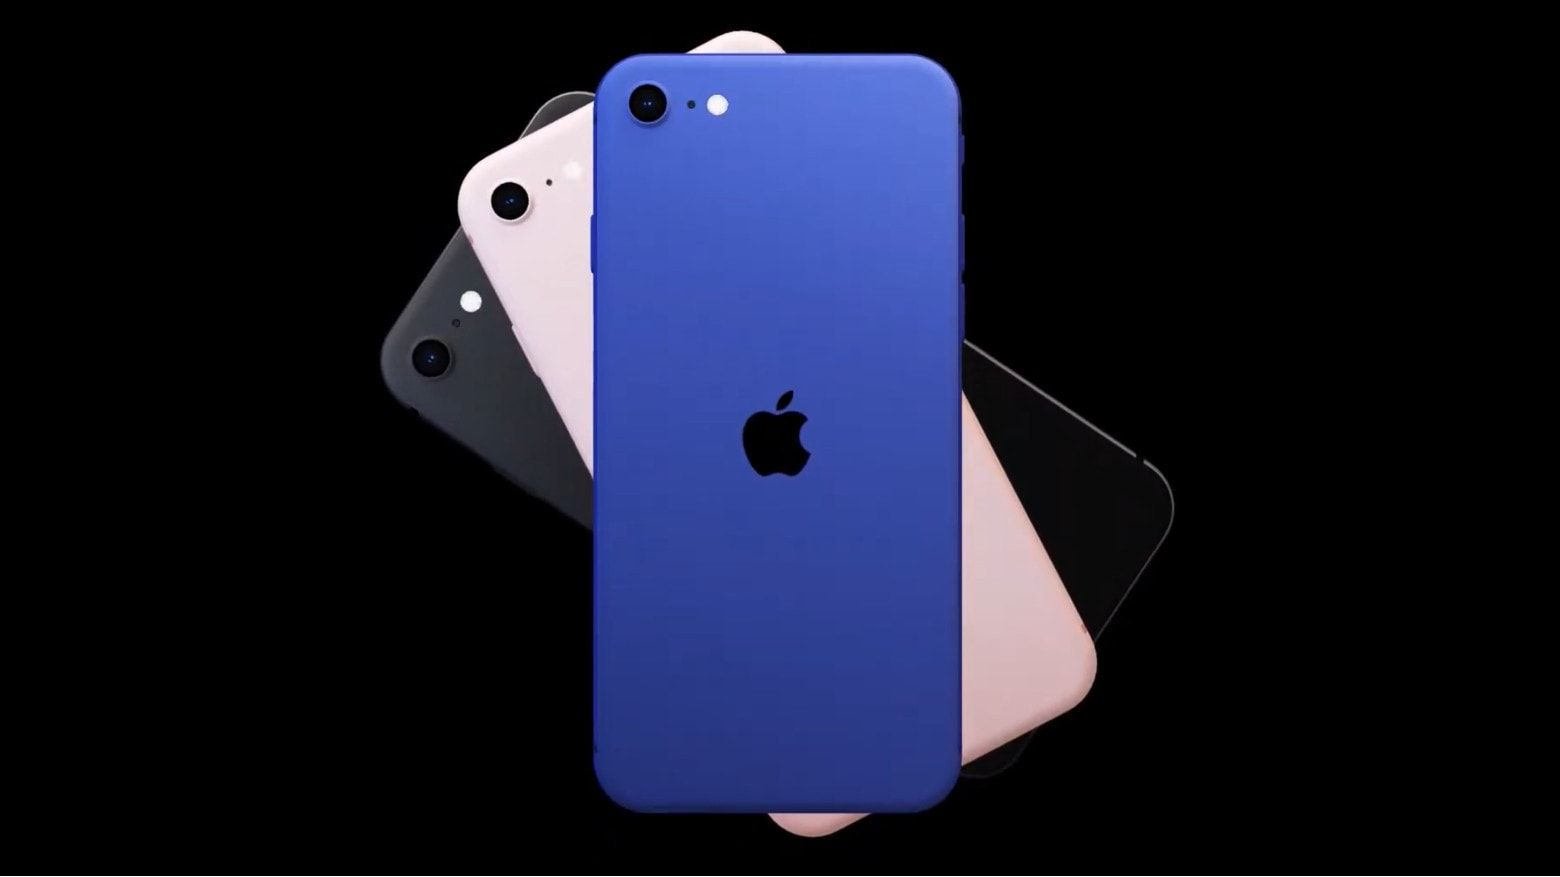 Apple Iphone 9 Release Date Specs Iphone 9 Plus Variant And June 2020 Launch Confirmed Iphone 9 Iphone Apple Iphone